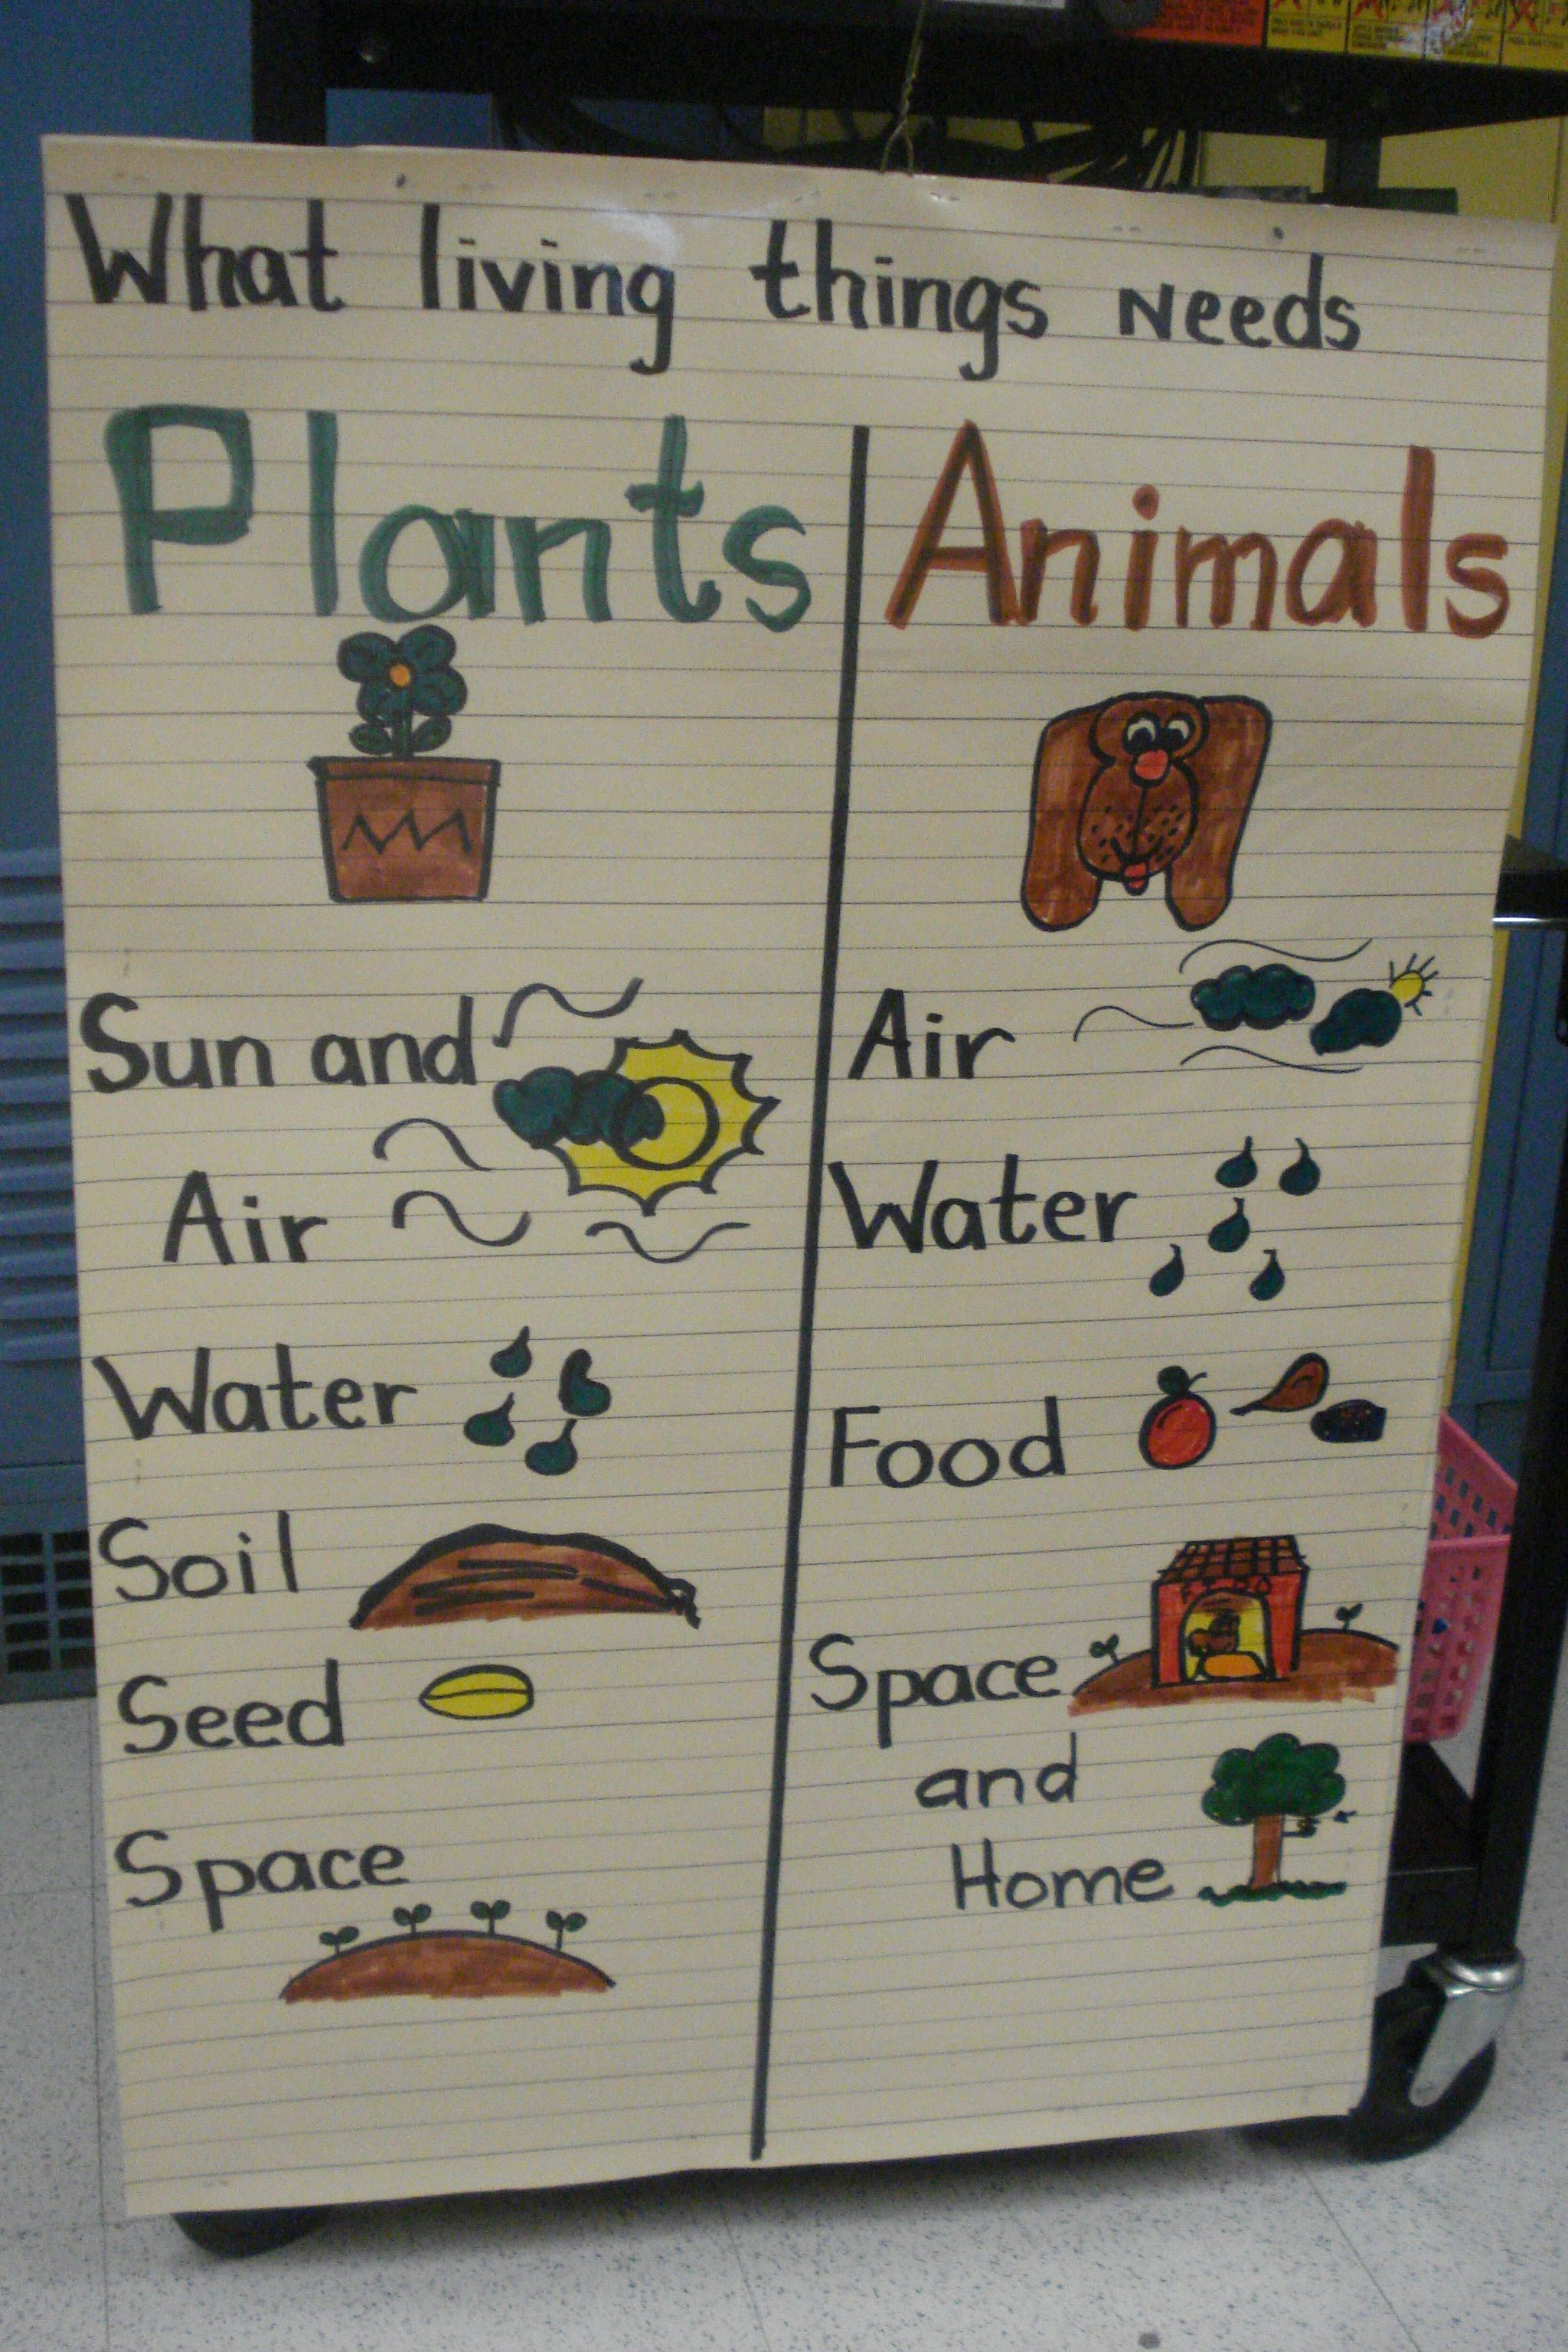 plants and animals needs anchor chart kindergarten science and social studies pinterest. Black Bedroom Furniture Sets. Home Design Ideas